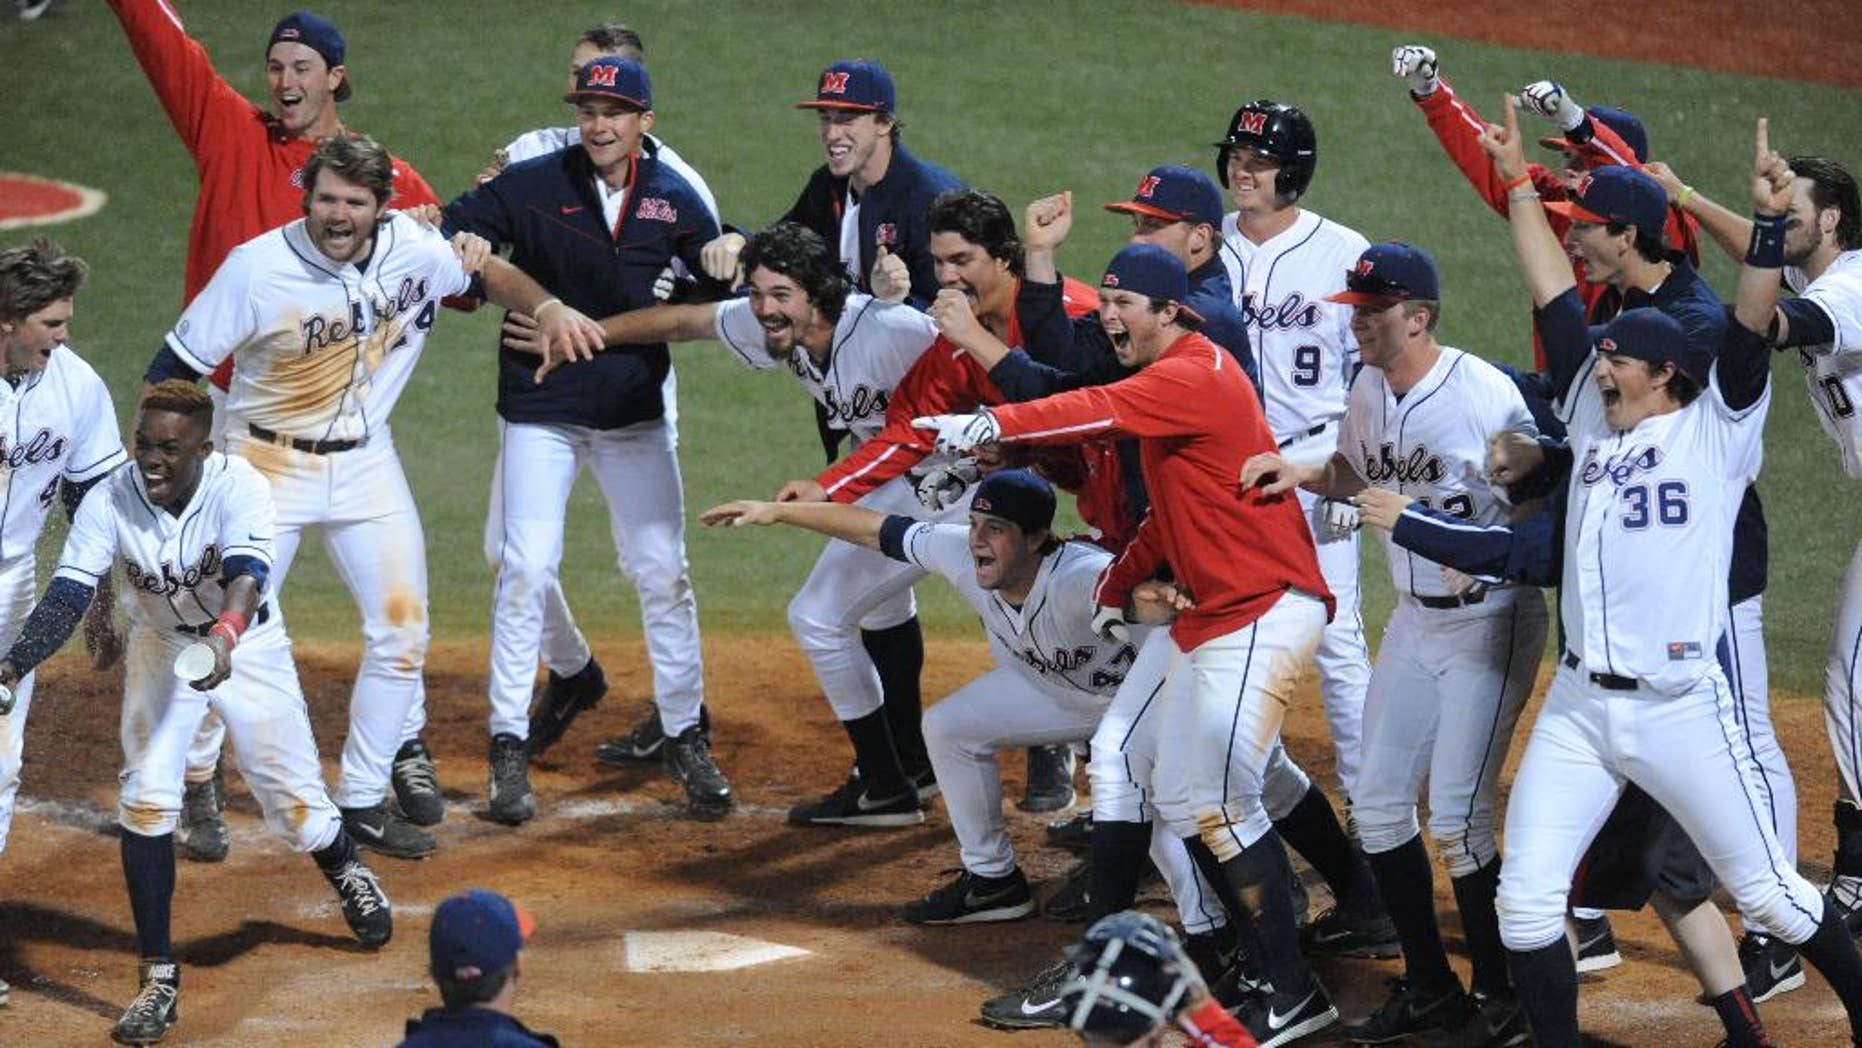 Mississippi players celebrate Austin Anderson's three-run walk-off home run in the 13th inning against Auburn in an NCAA college baseball game in Oxford, Miss., on Friday, April 4, 2014. Mississippi won 8-5. (AP Photo/Oxford Eagle, Bruce Newman) MANDATORY CREDIT  MAGS OUT  NO SALES